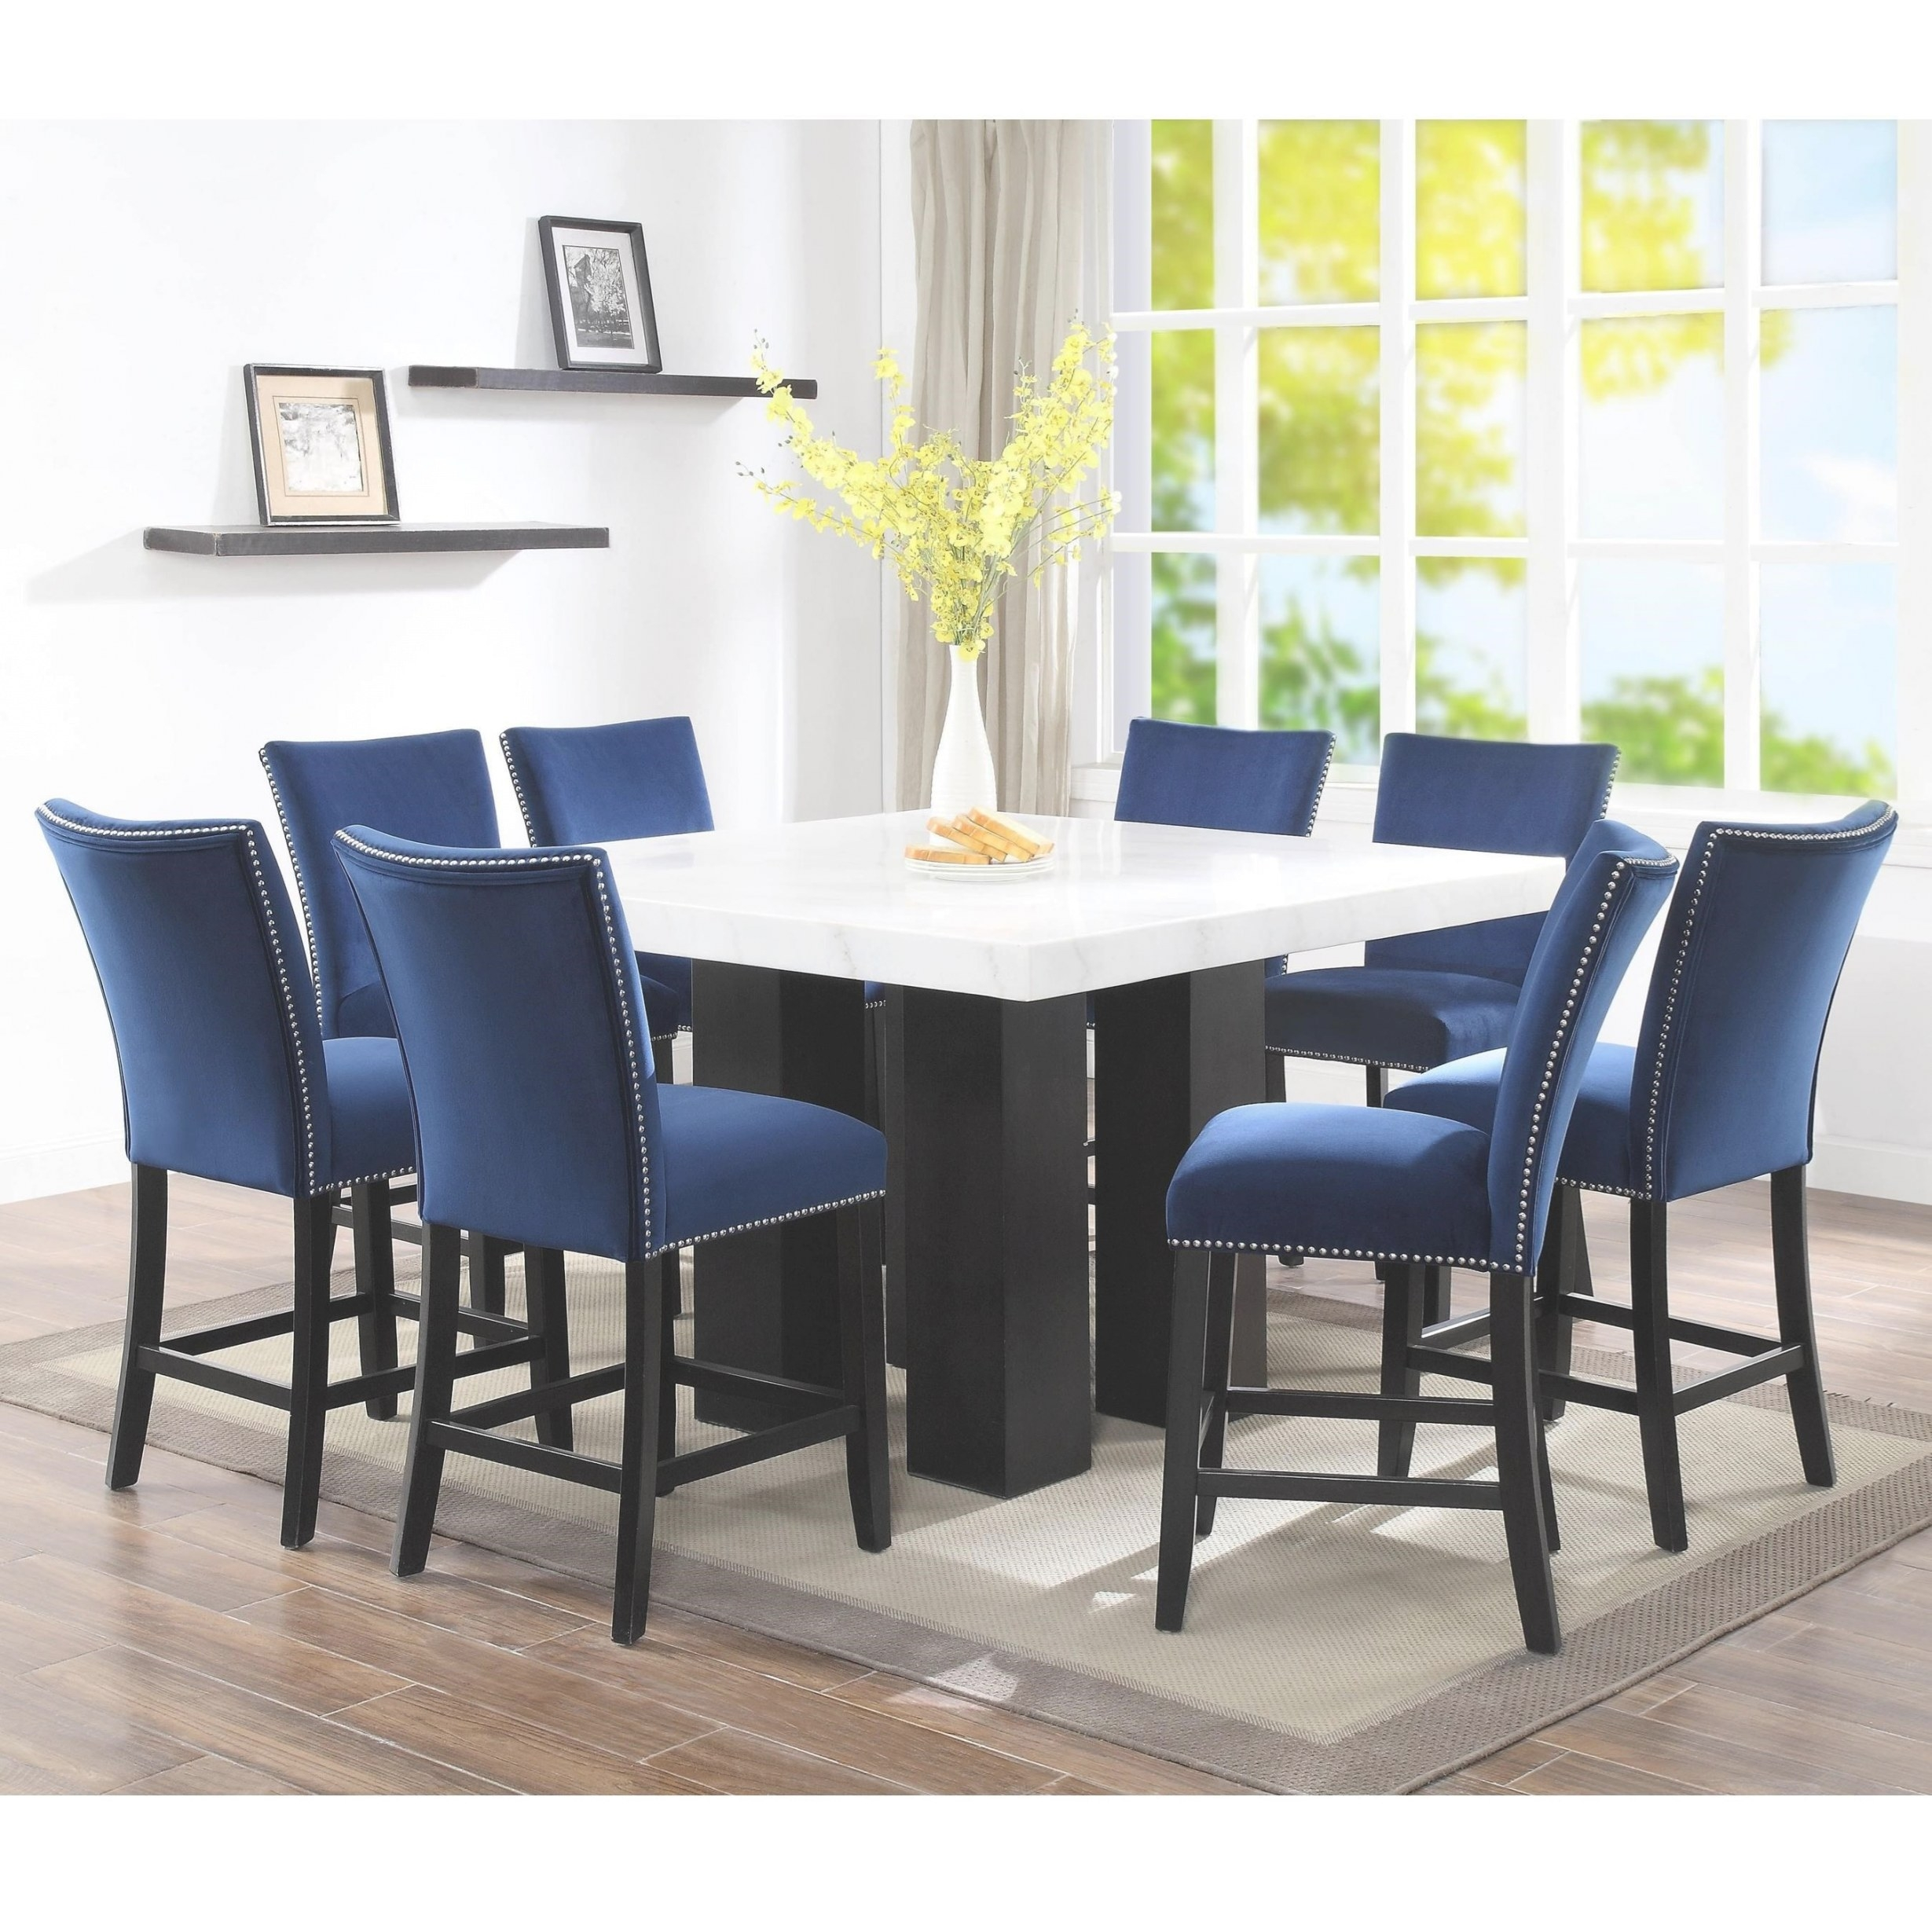 Steve Silver Camila 9 Piece Counter Height Dining Set With intended for 9 Piece Dining Set